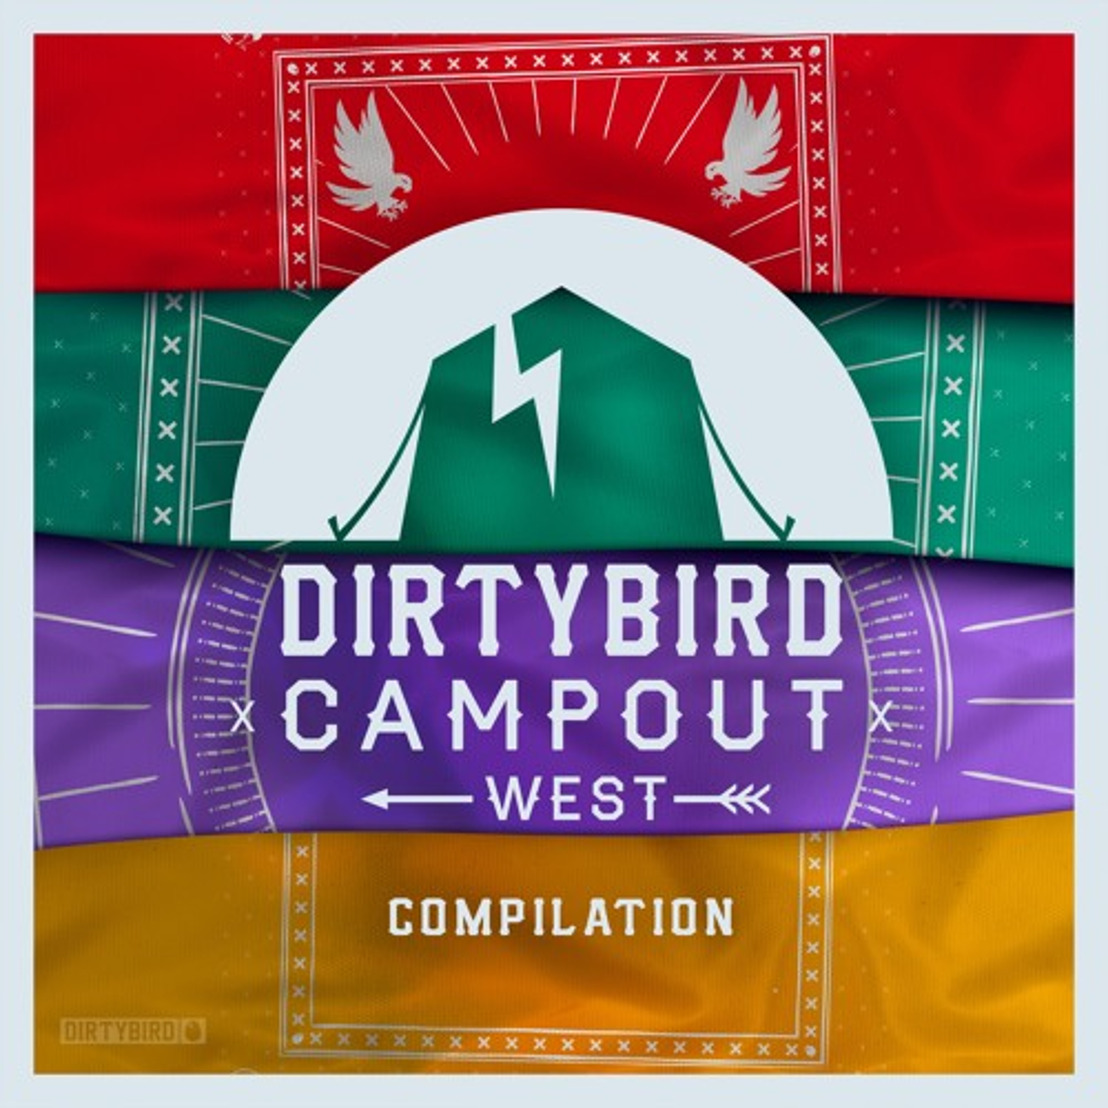 Dirtybird Campout West Compilation Drops Ahead of SOLD OUT Festival October 5-7 at Modesto Reservoir